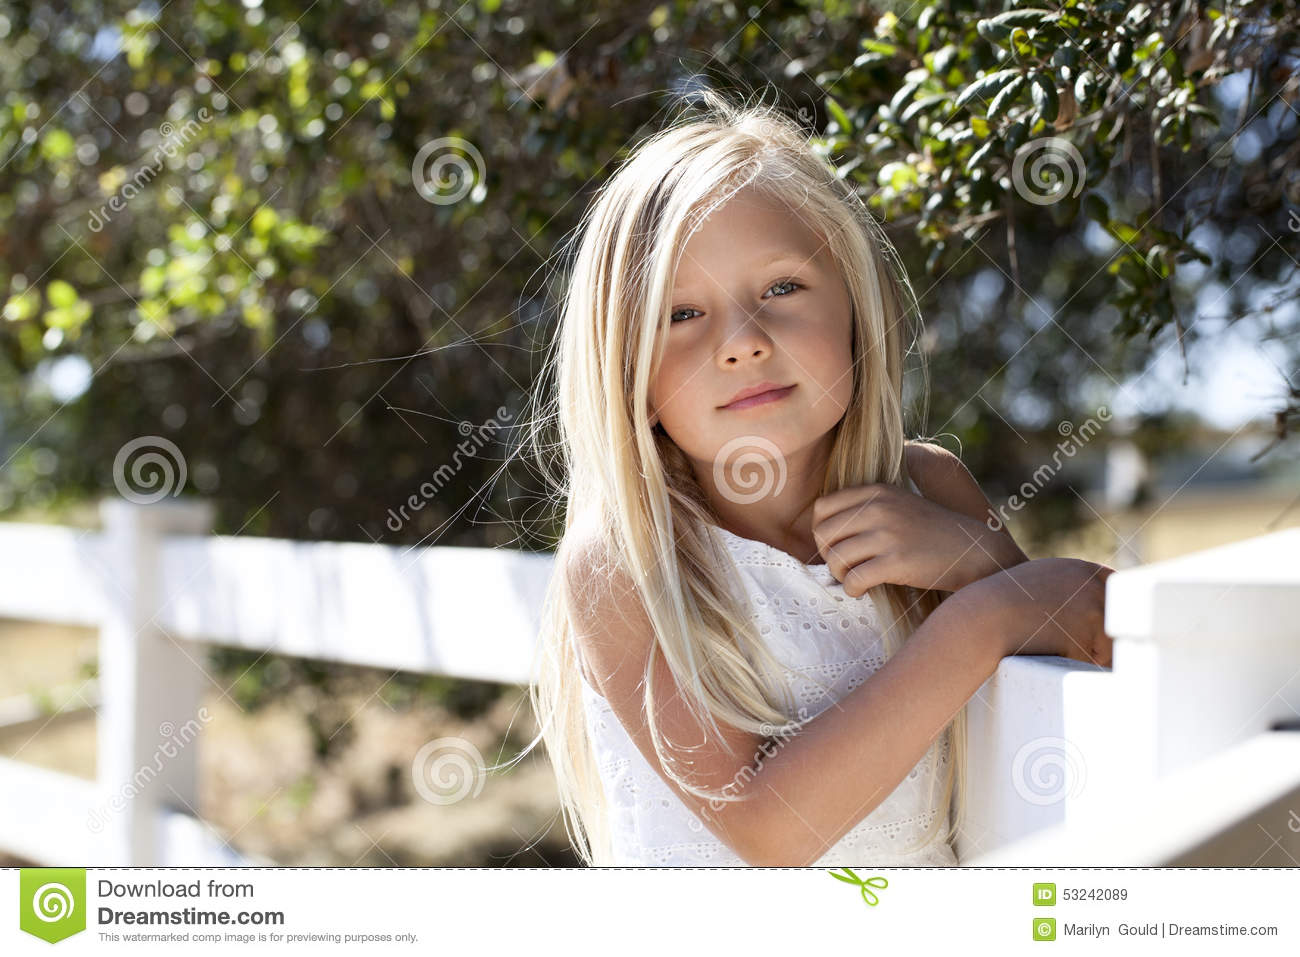 Young Blond Girl on Fence